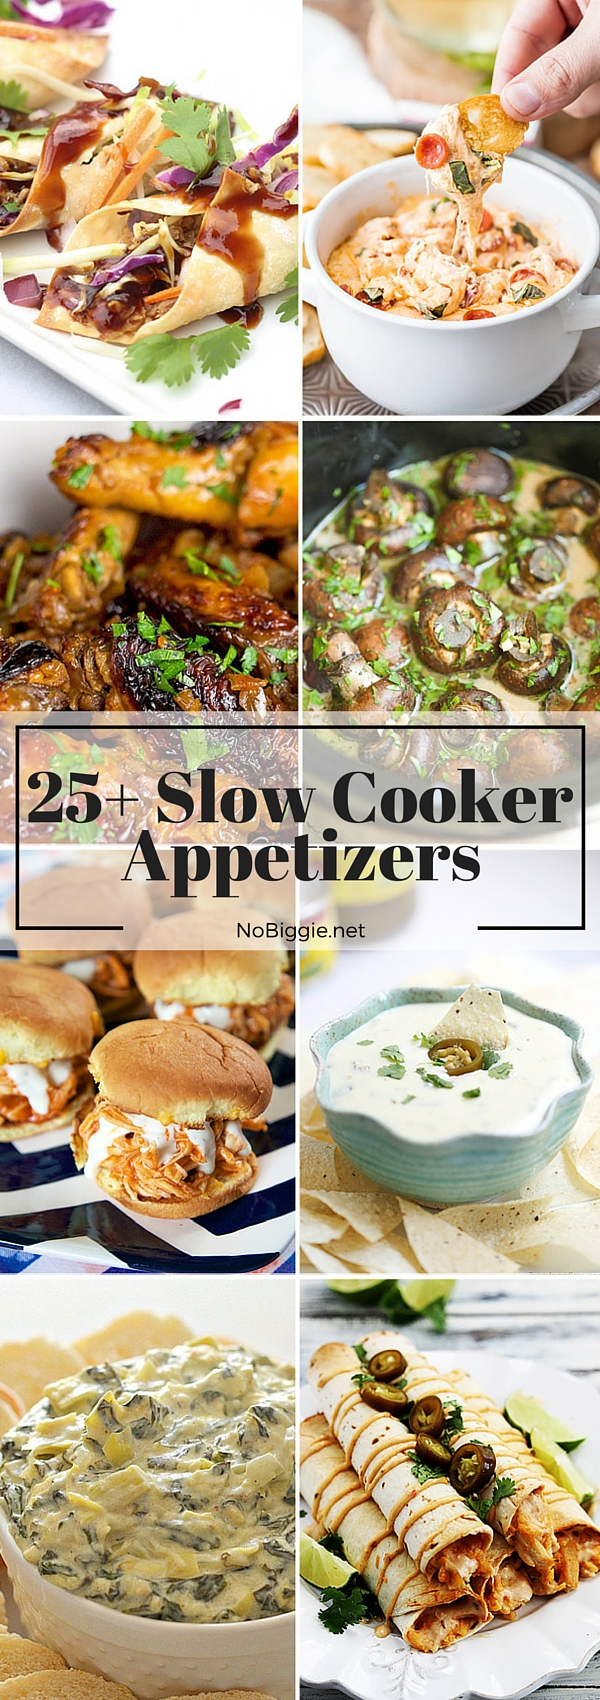 Slow Cooker Appetizers - recipes to help make feeding the crowd a breeze. #slowcooker #slowcookerappetizers #appetizers #crockpot